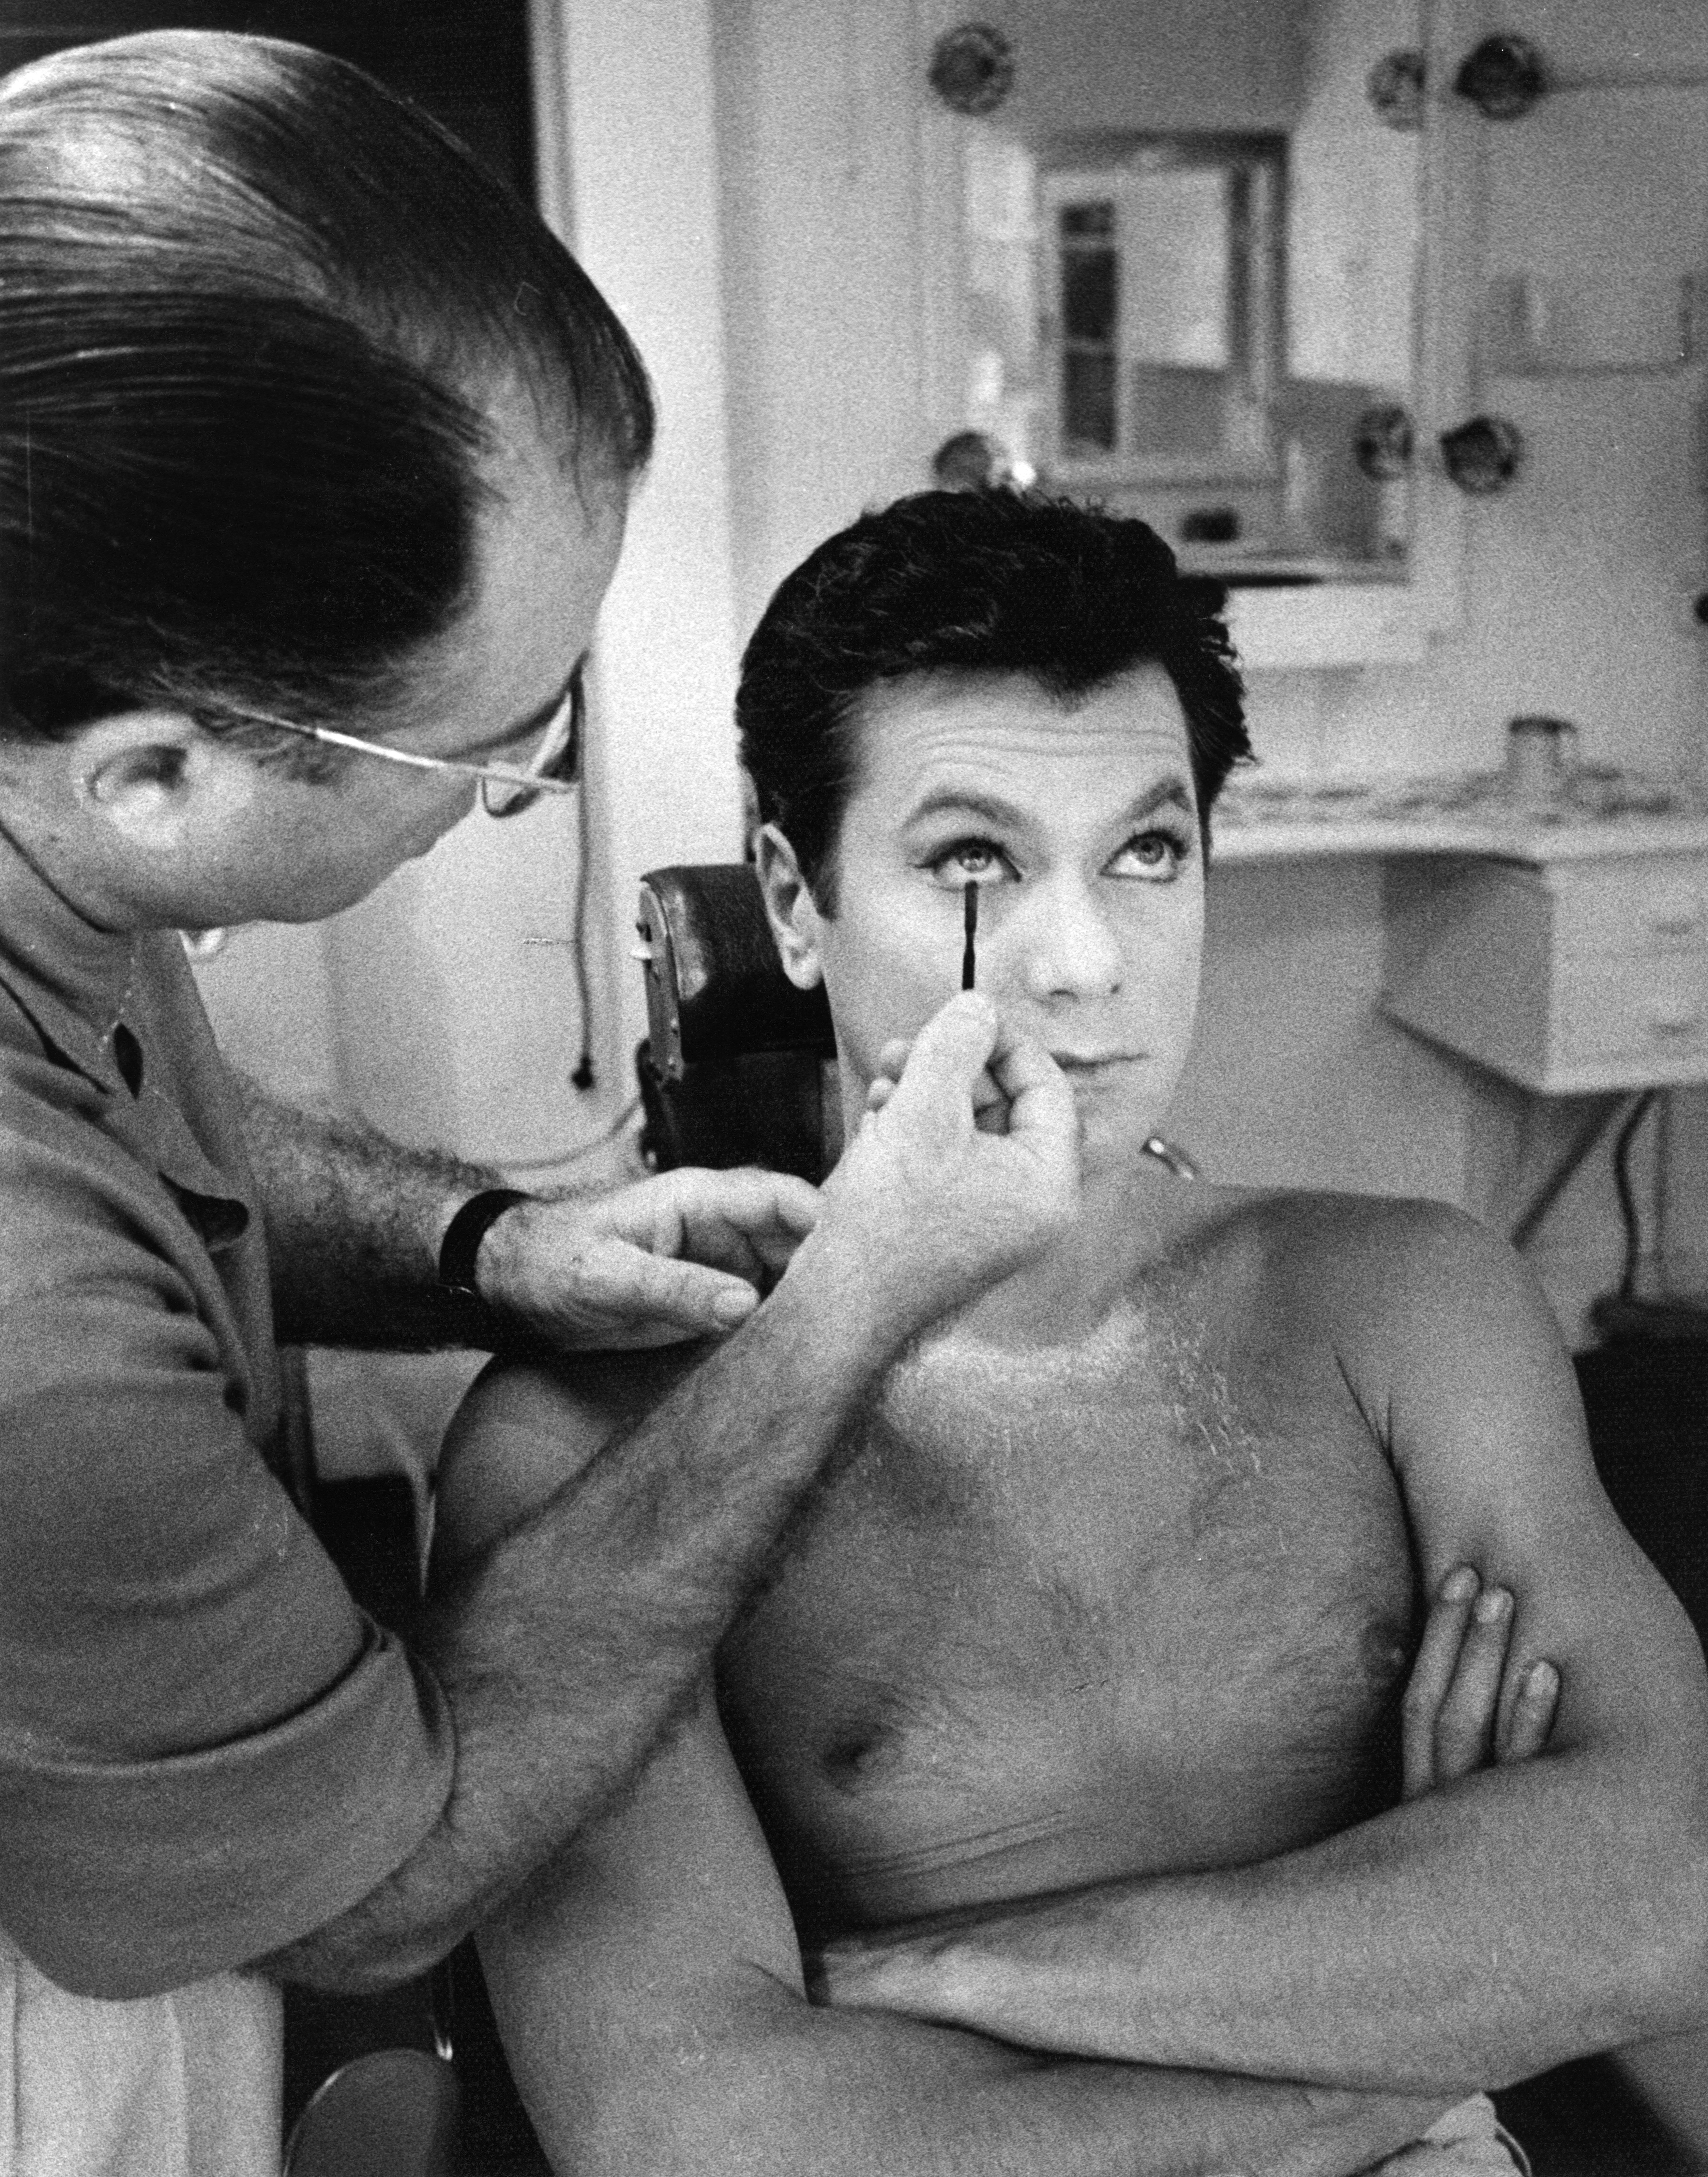 """Tony Curtis getting make up applied by Emile LaVigne on the set of """"Some Like It Hot"""" in 1958 in Los Angeles"""